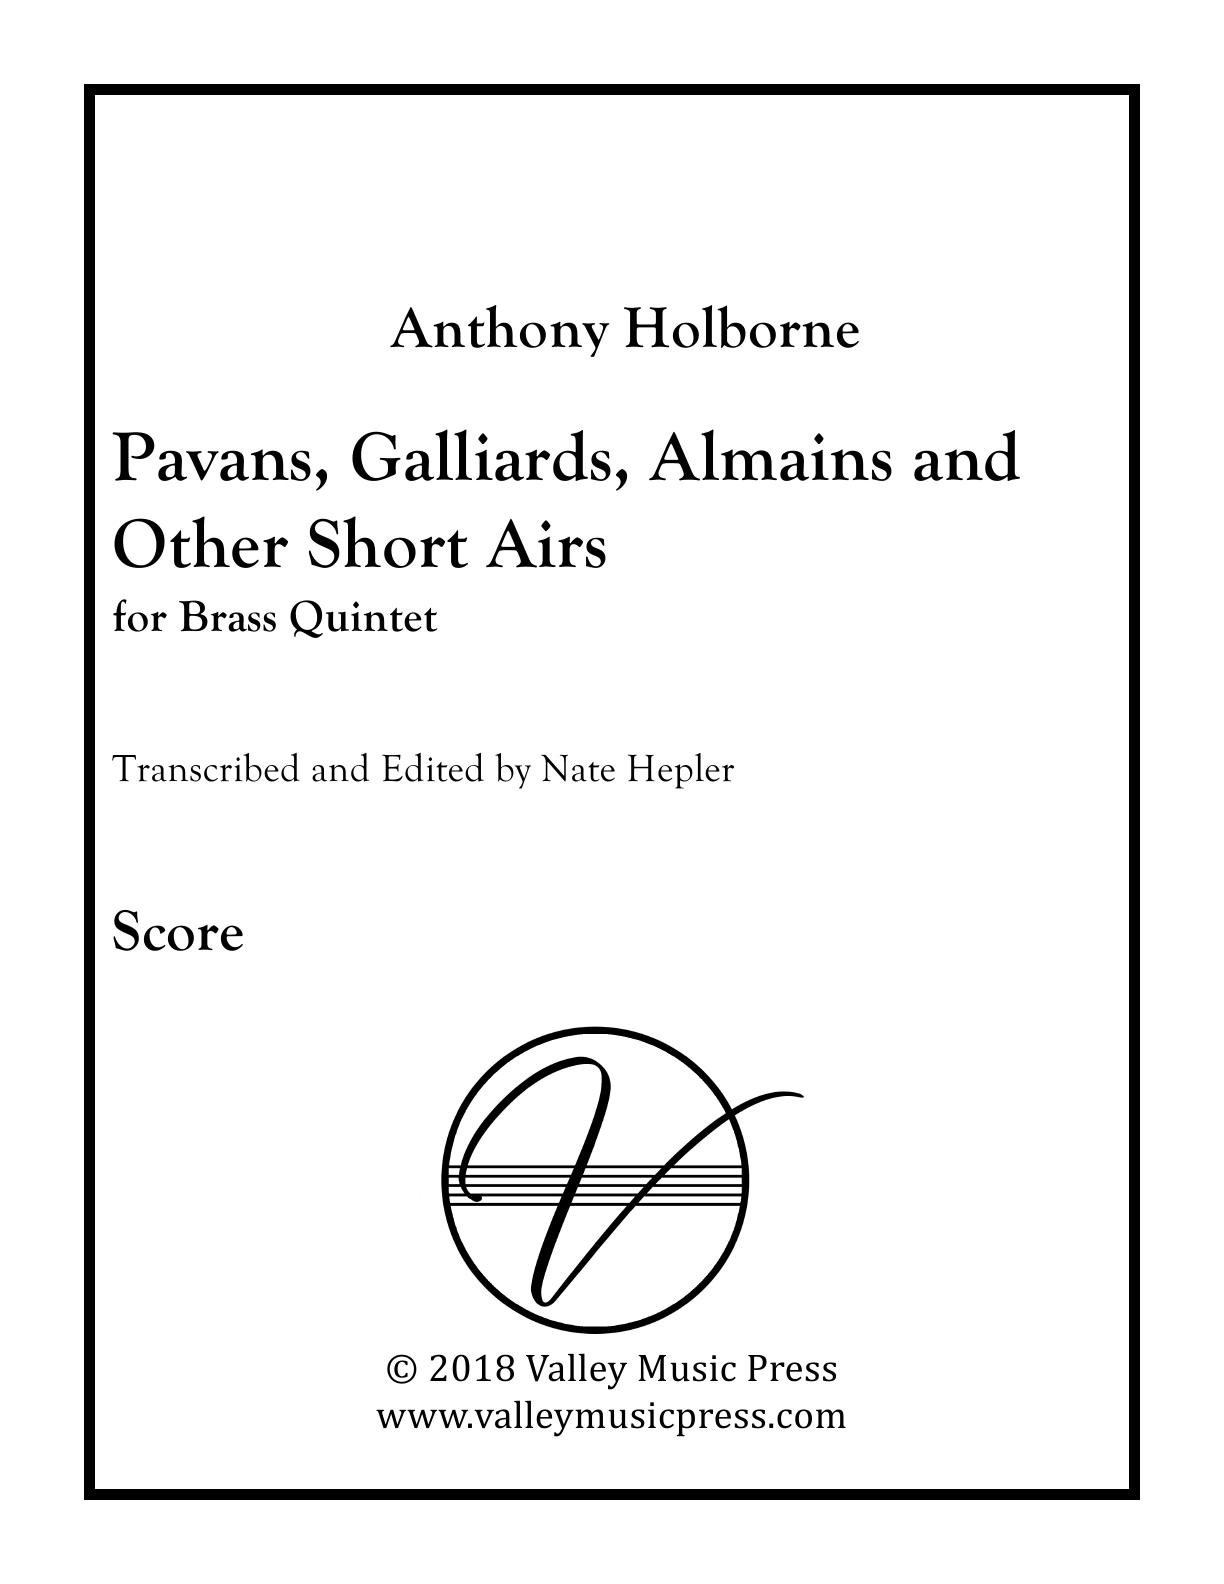 Holborne - Pavans, Galliards, Almains and Short Airs (All) (BQ)